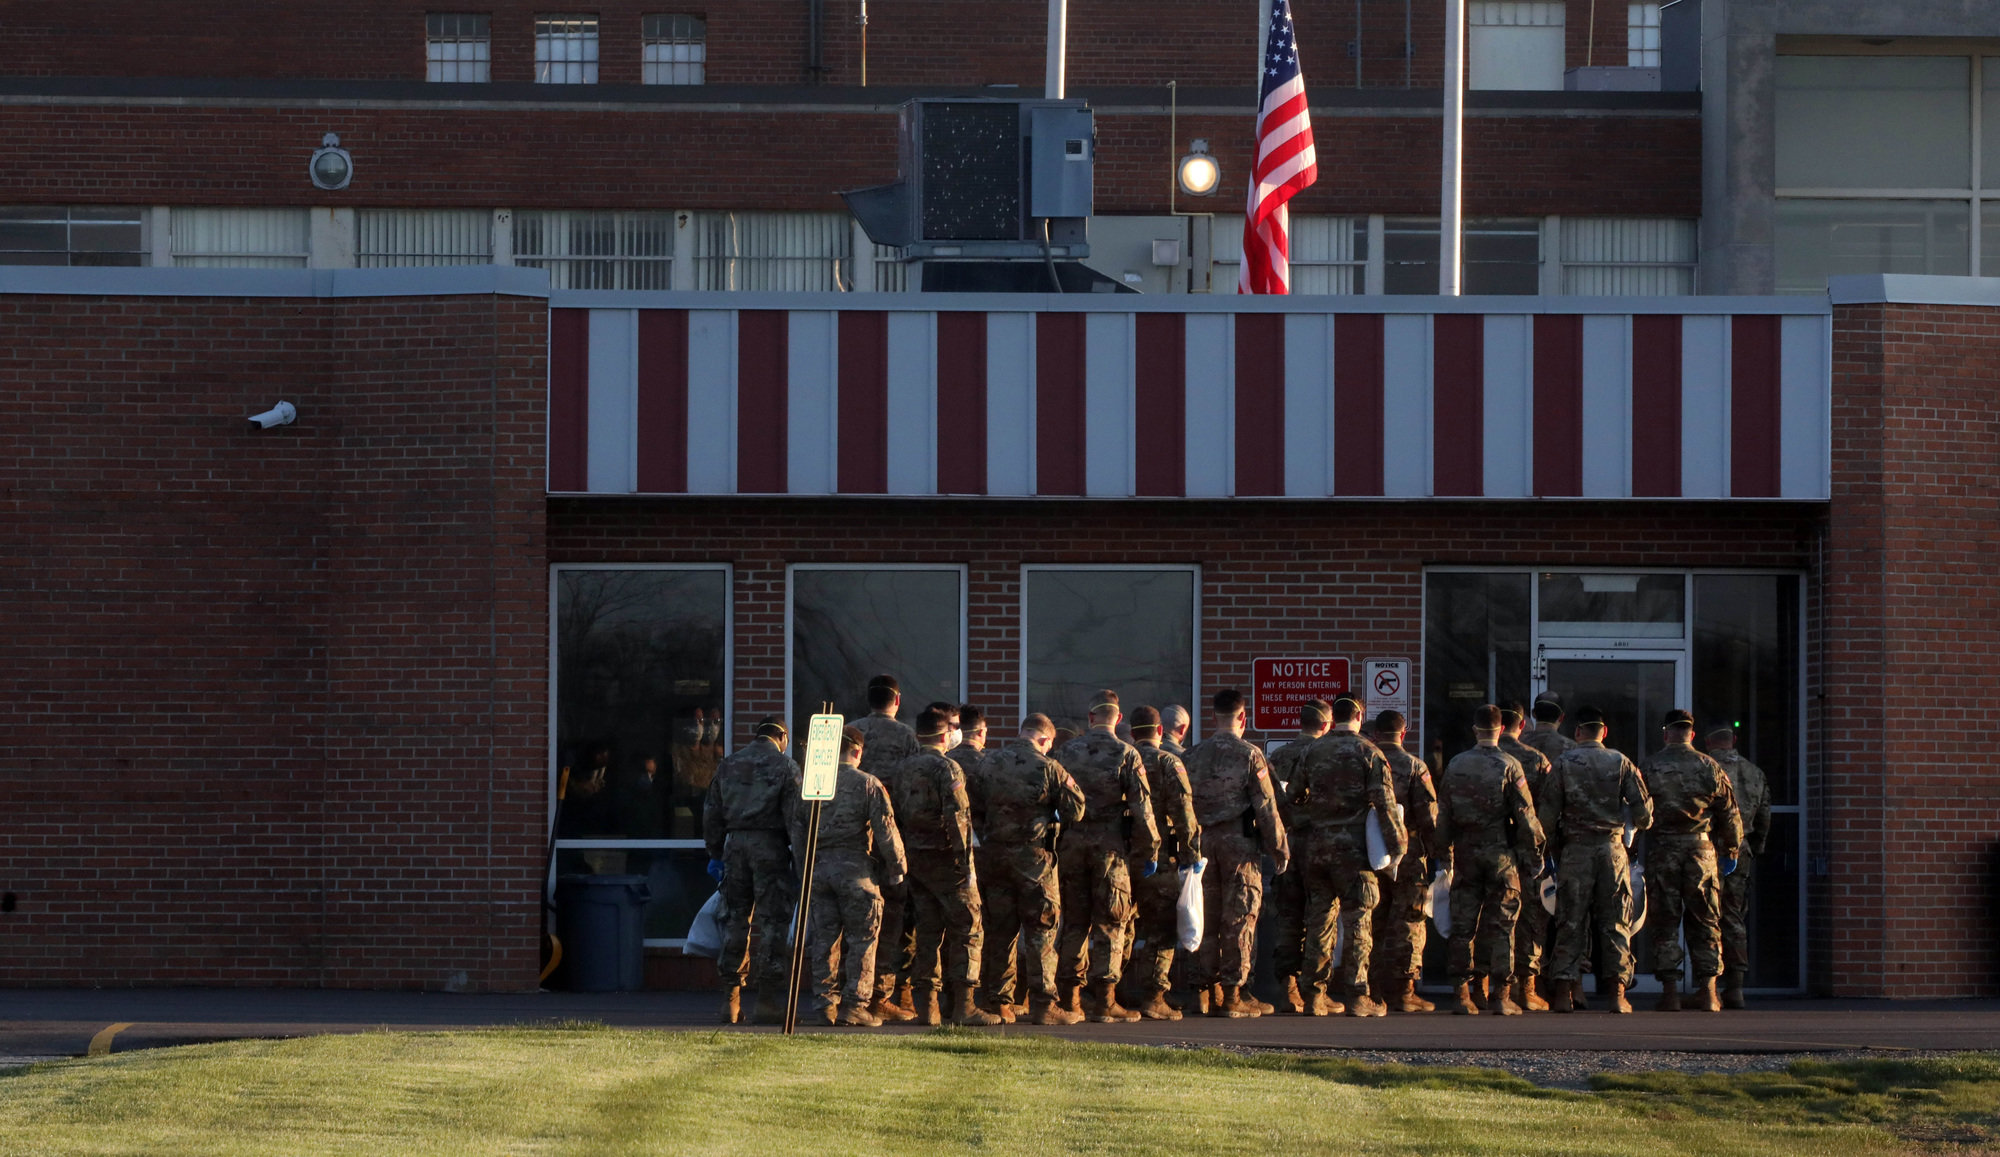 Members of the National Guard headed into the Marion Correctional Institution in Marion, Ohio, to help during the COVID-19 pandemic on April 20, 2020.